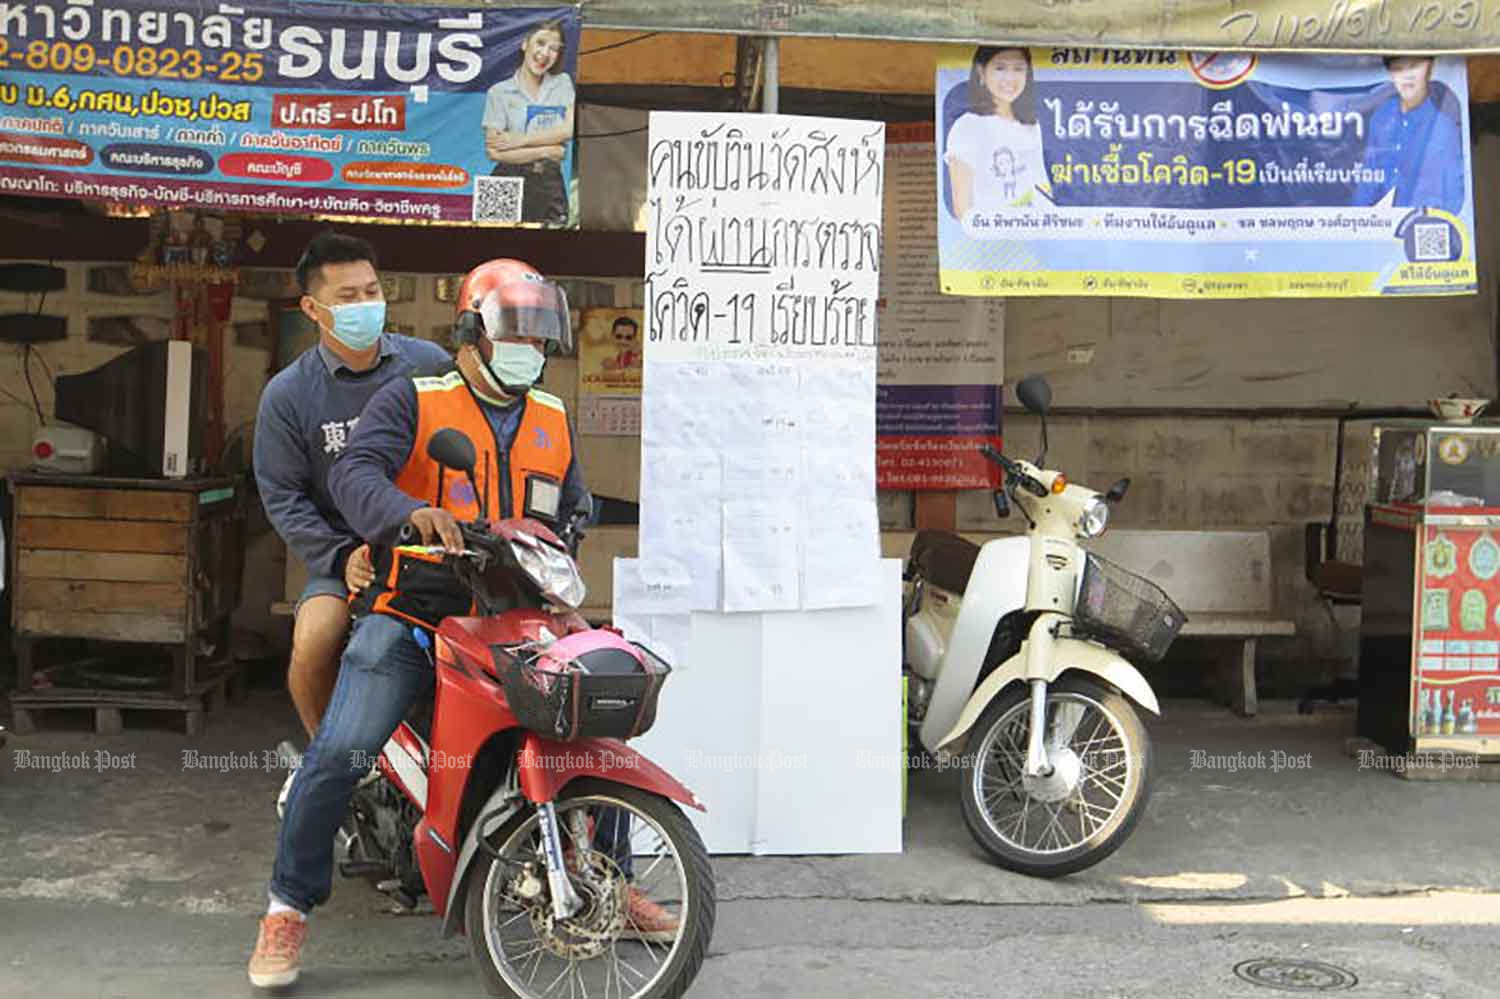 A taxi motorcyclist picks up a passenger on Soi Wat Sing in Chom Thong district of Bangkok on Tuesday, with a poster hung at the stand saying drivers there have been tested for Covid-19. (Photo: Arnun Chonmahatrakool)